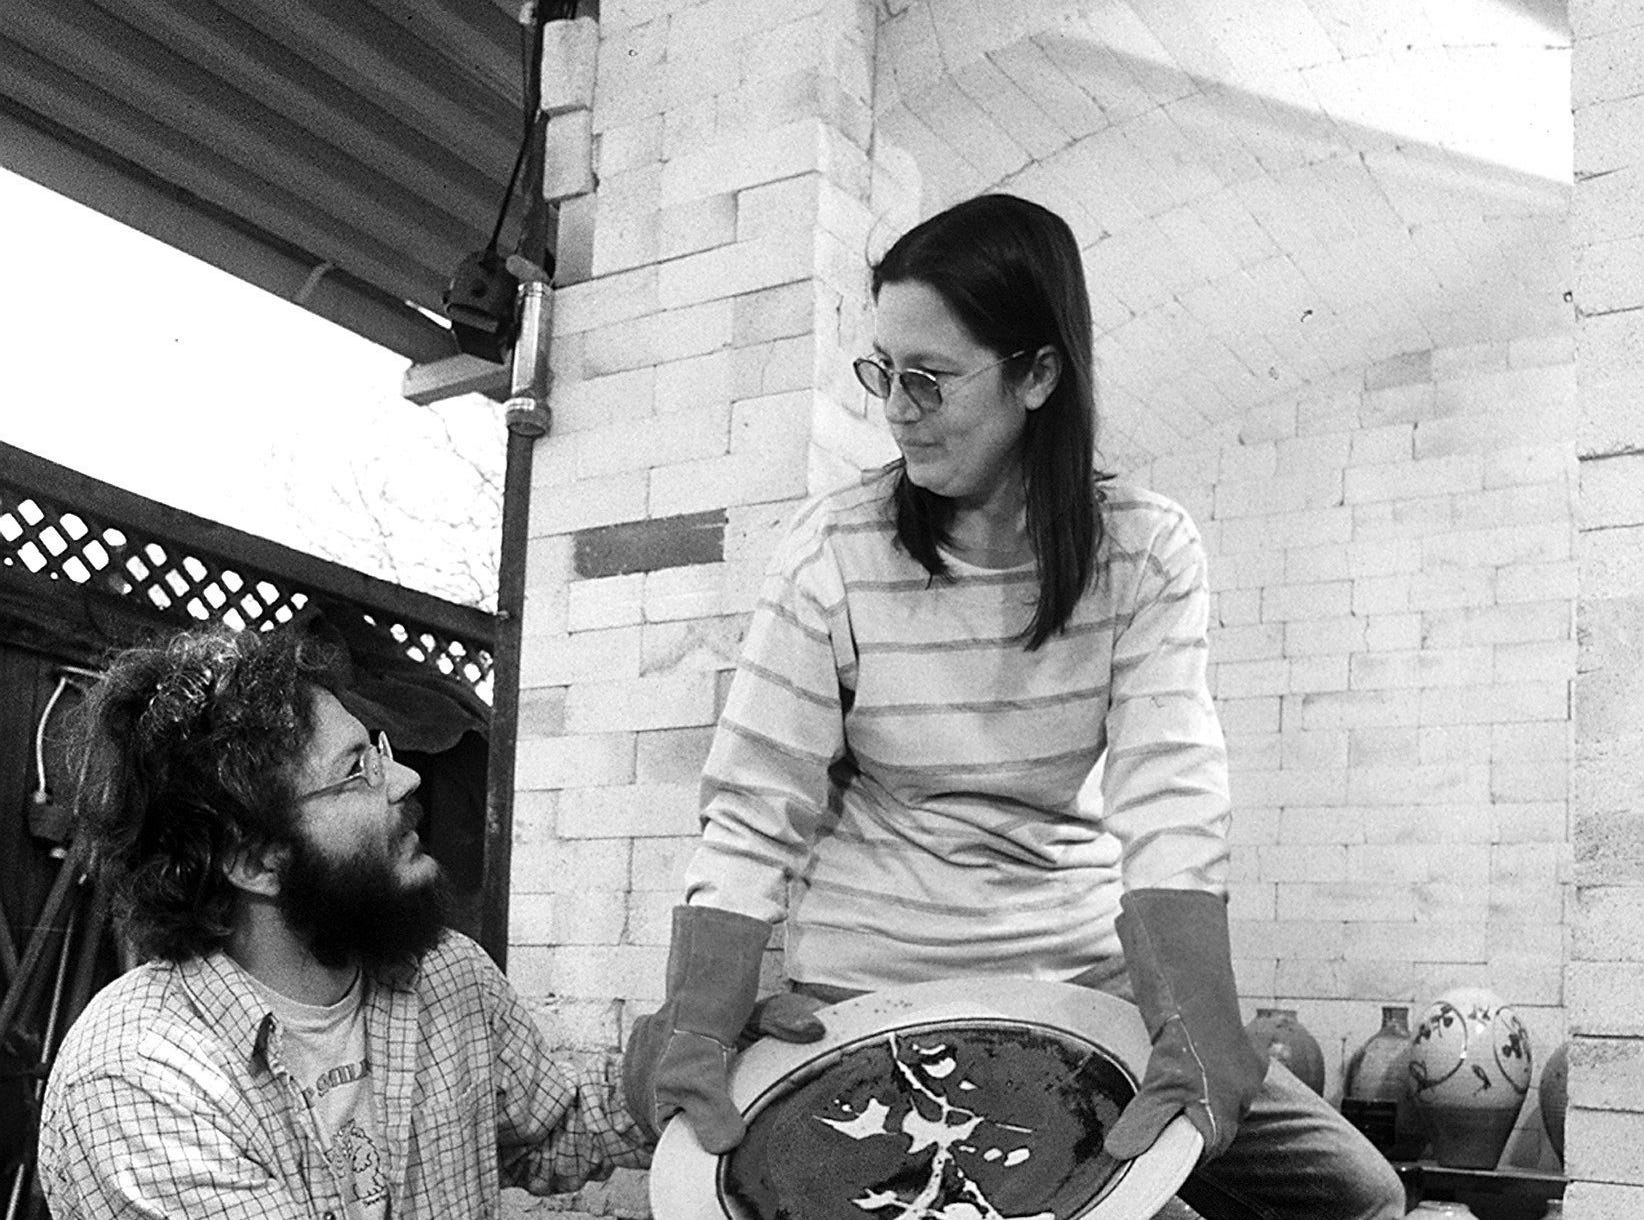 Dale and Brin Baucum at the kiln door in March 1985 prepare for the sixth annual Memphis Potters' Guild show and sale. Dale set up his pottery business here in 1973.